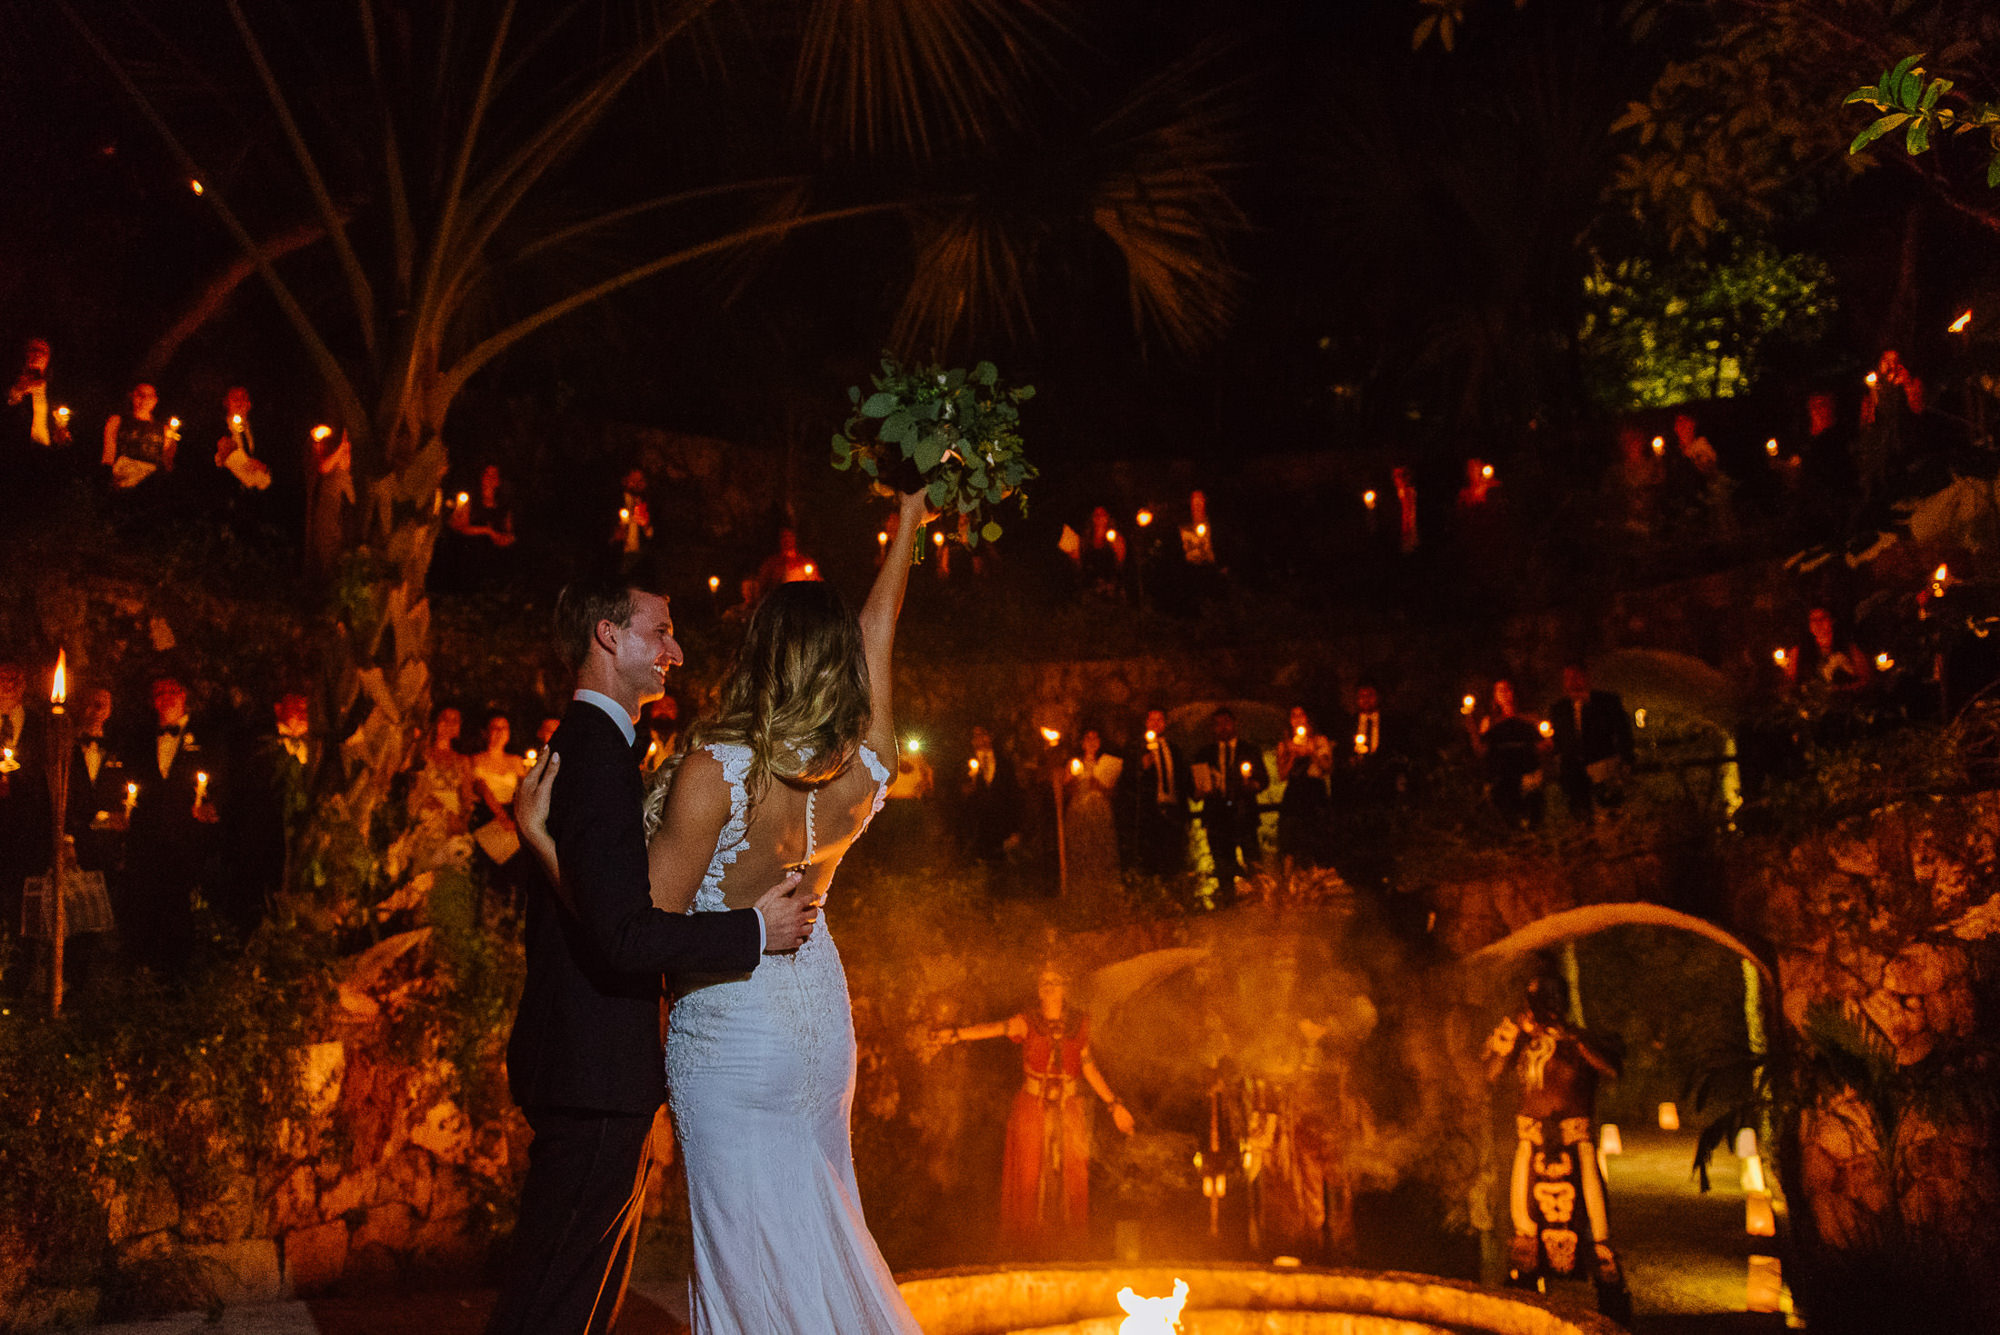 Bride cheers with bouquet in air to guests with groom in candlelit cenote reception, by Citlalli Rico